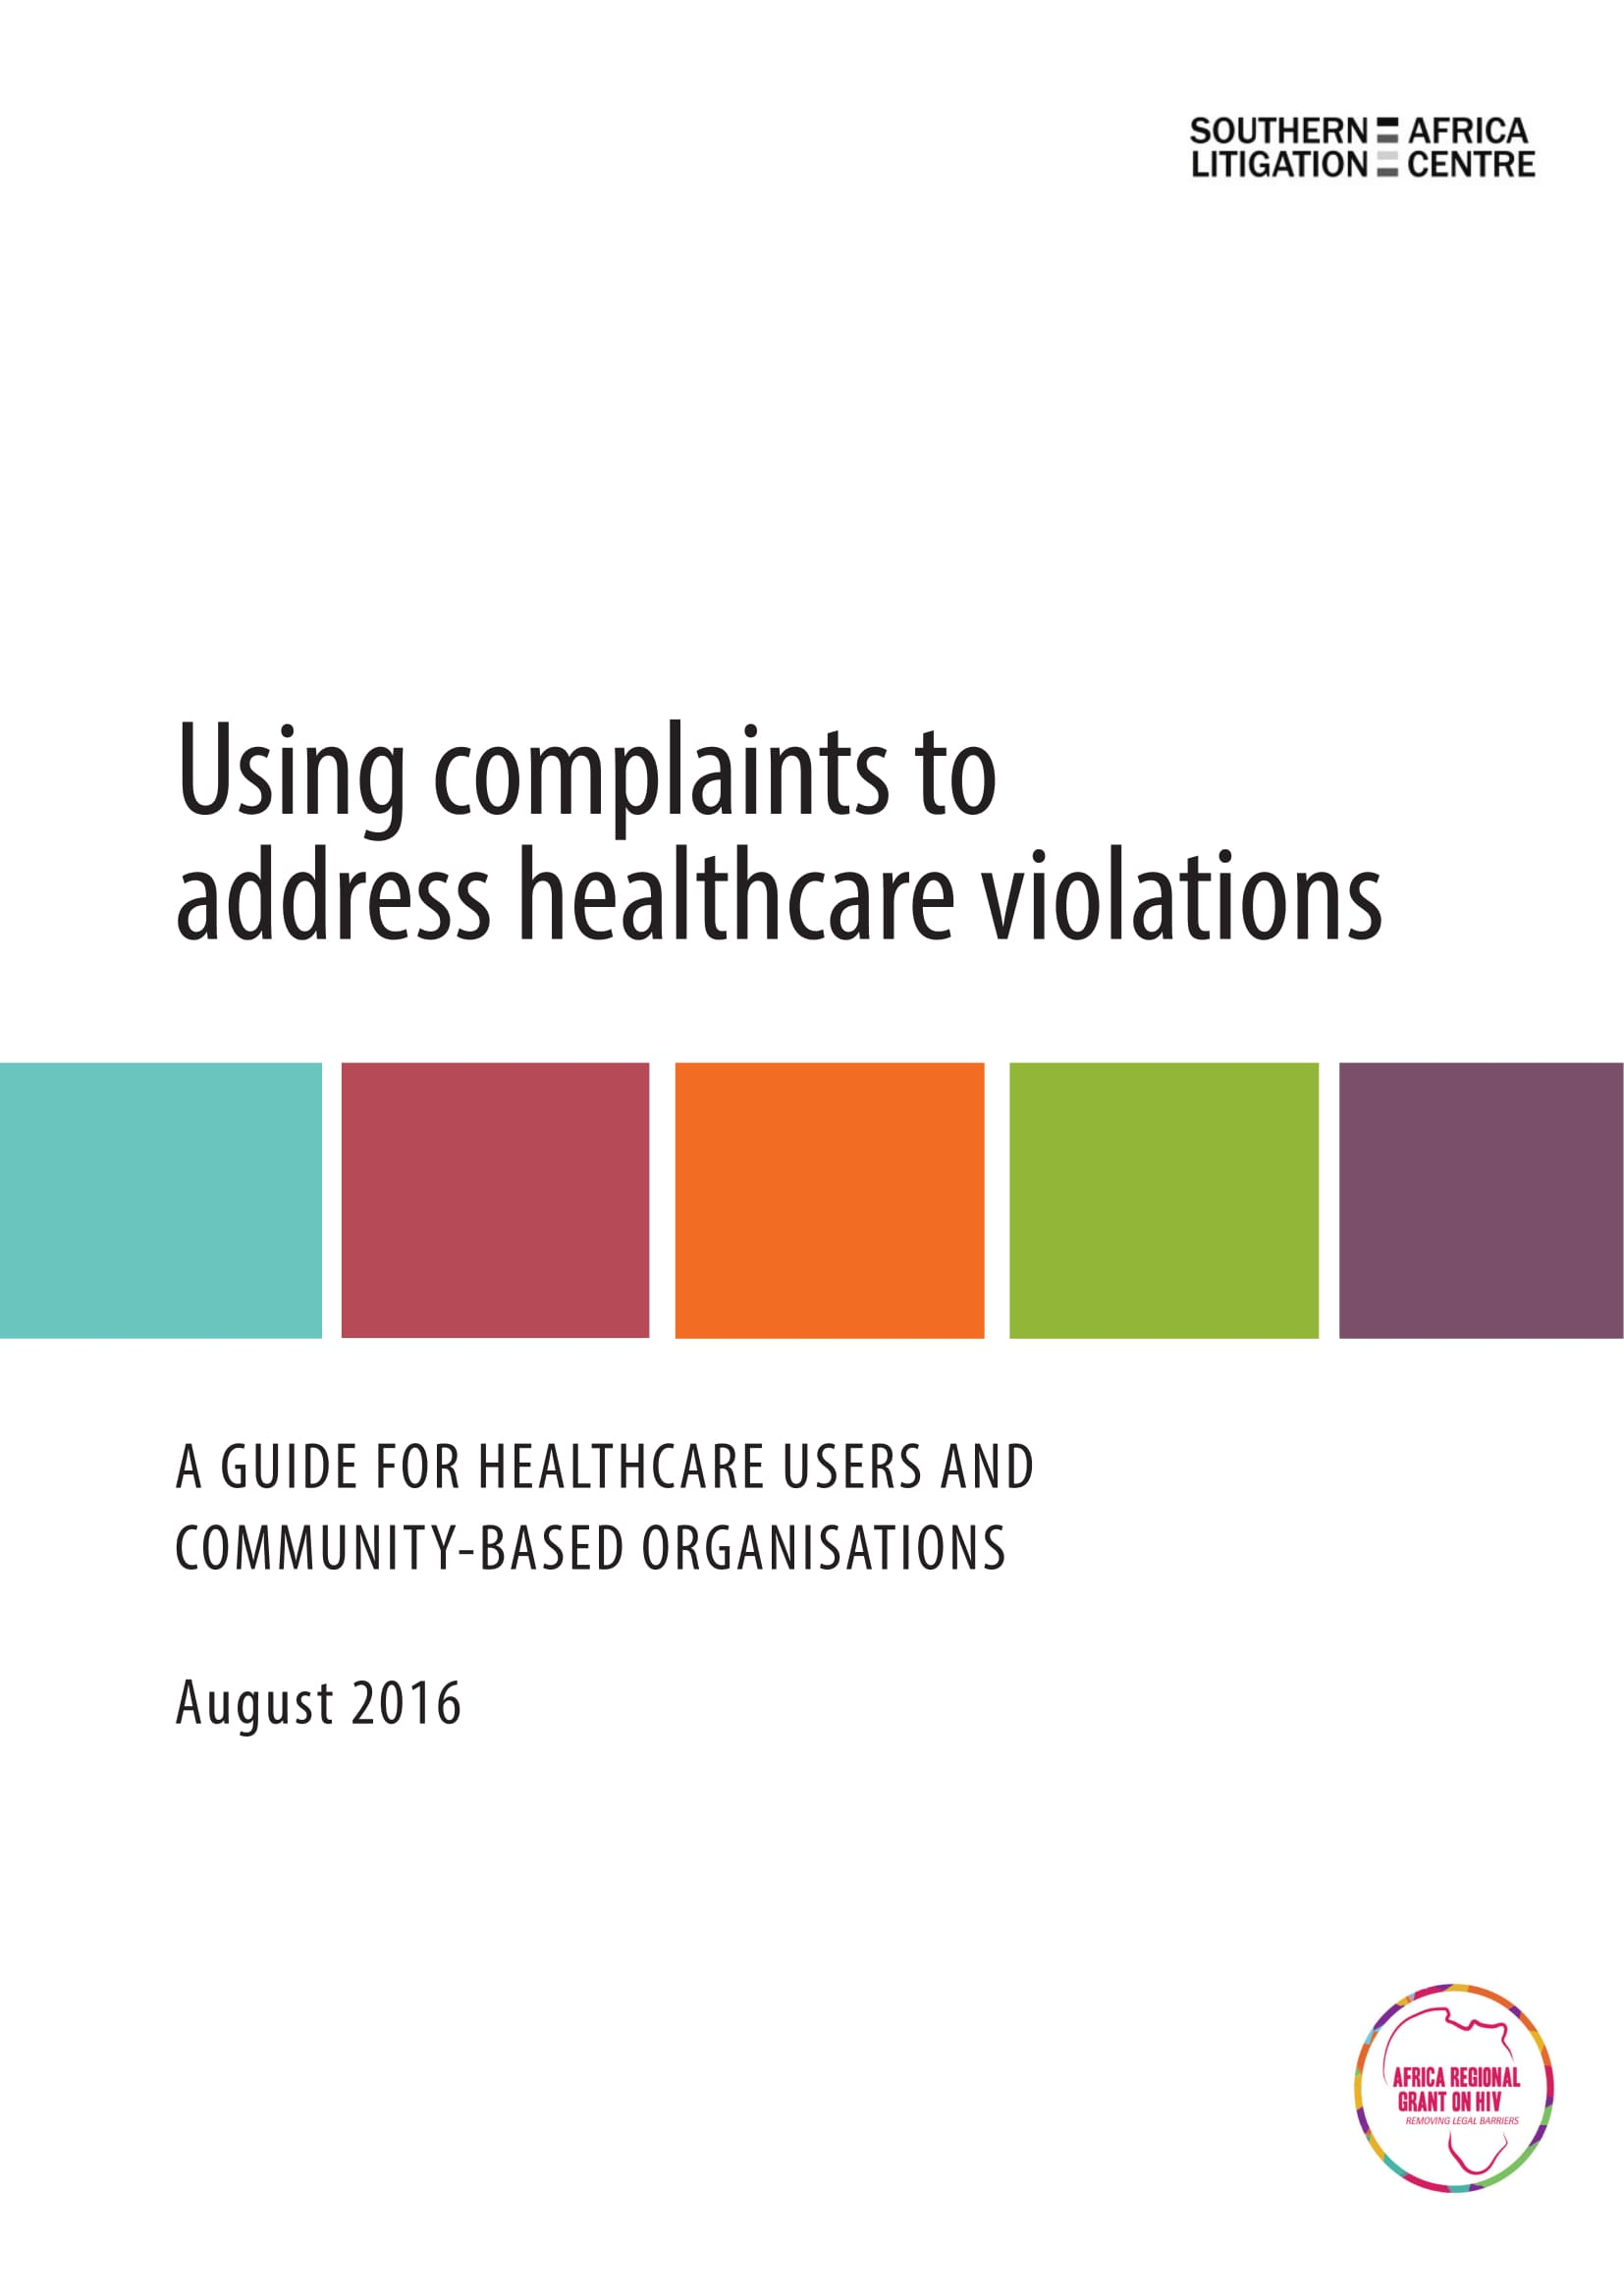 Using Complaints to Address Healthcare Violations: A Guide for Healthcare Users and Community-Based Organisations